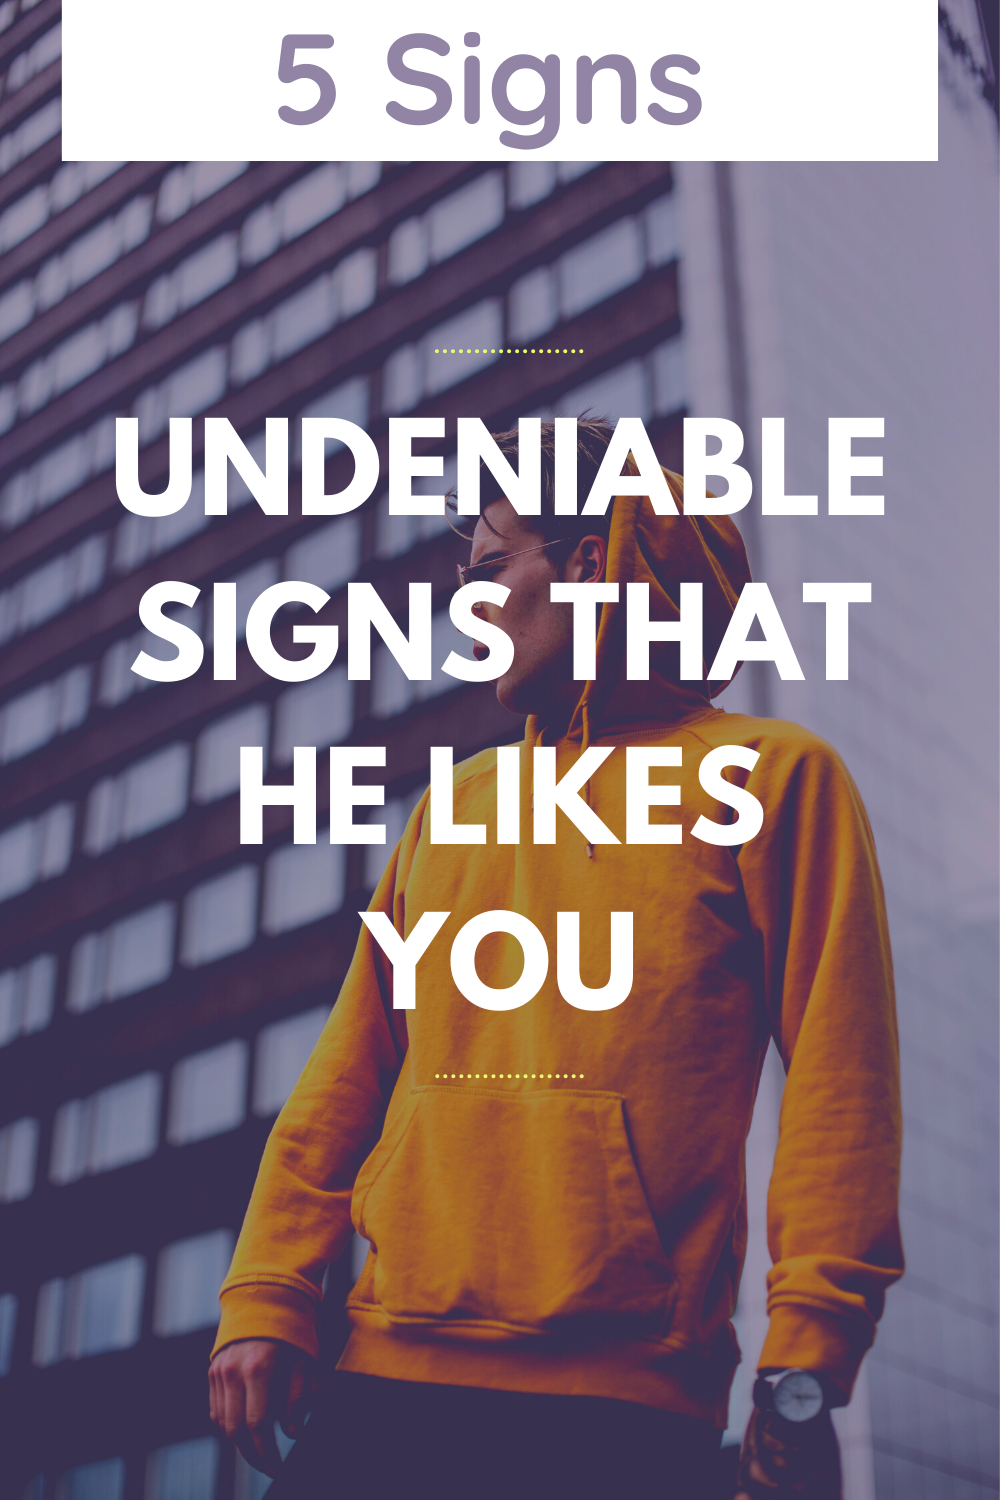 Undeniable Signs That He Likes You | Boyfriend ignoring